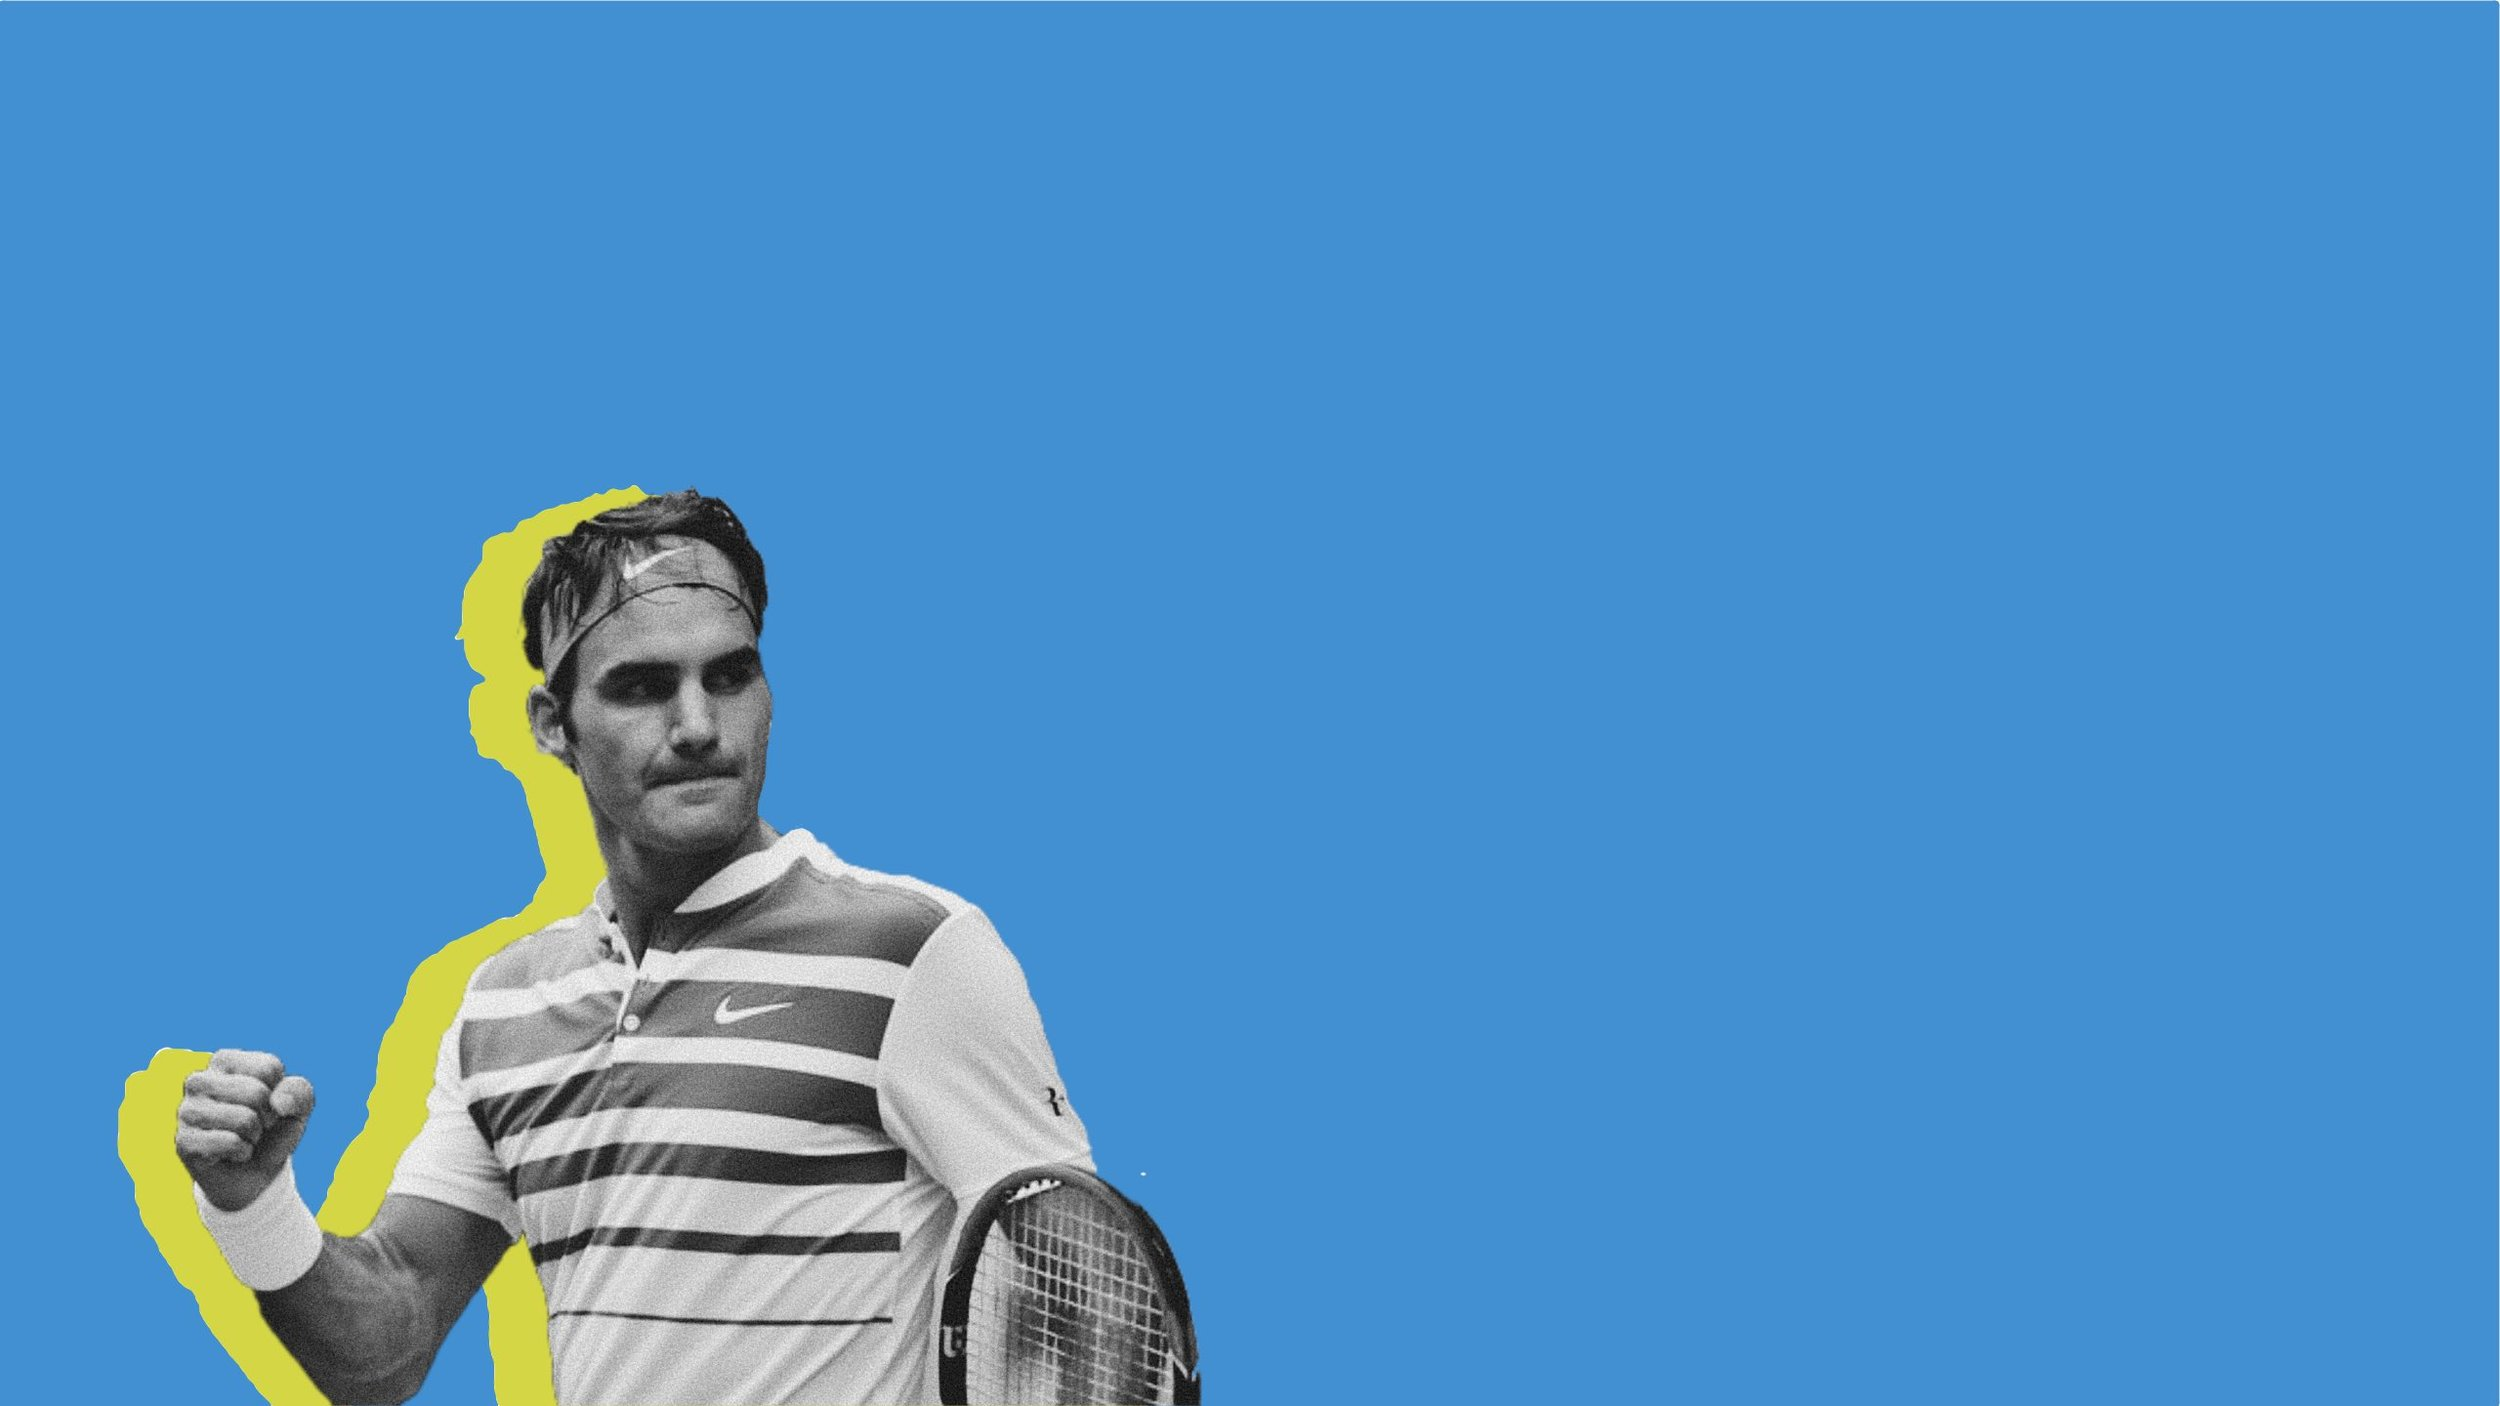 Nordic Functionality - Interiors inspired by Roger Federer